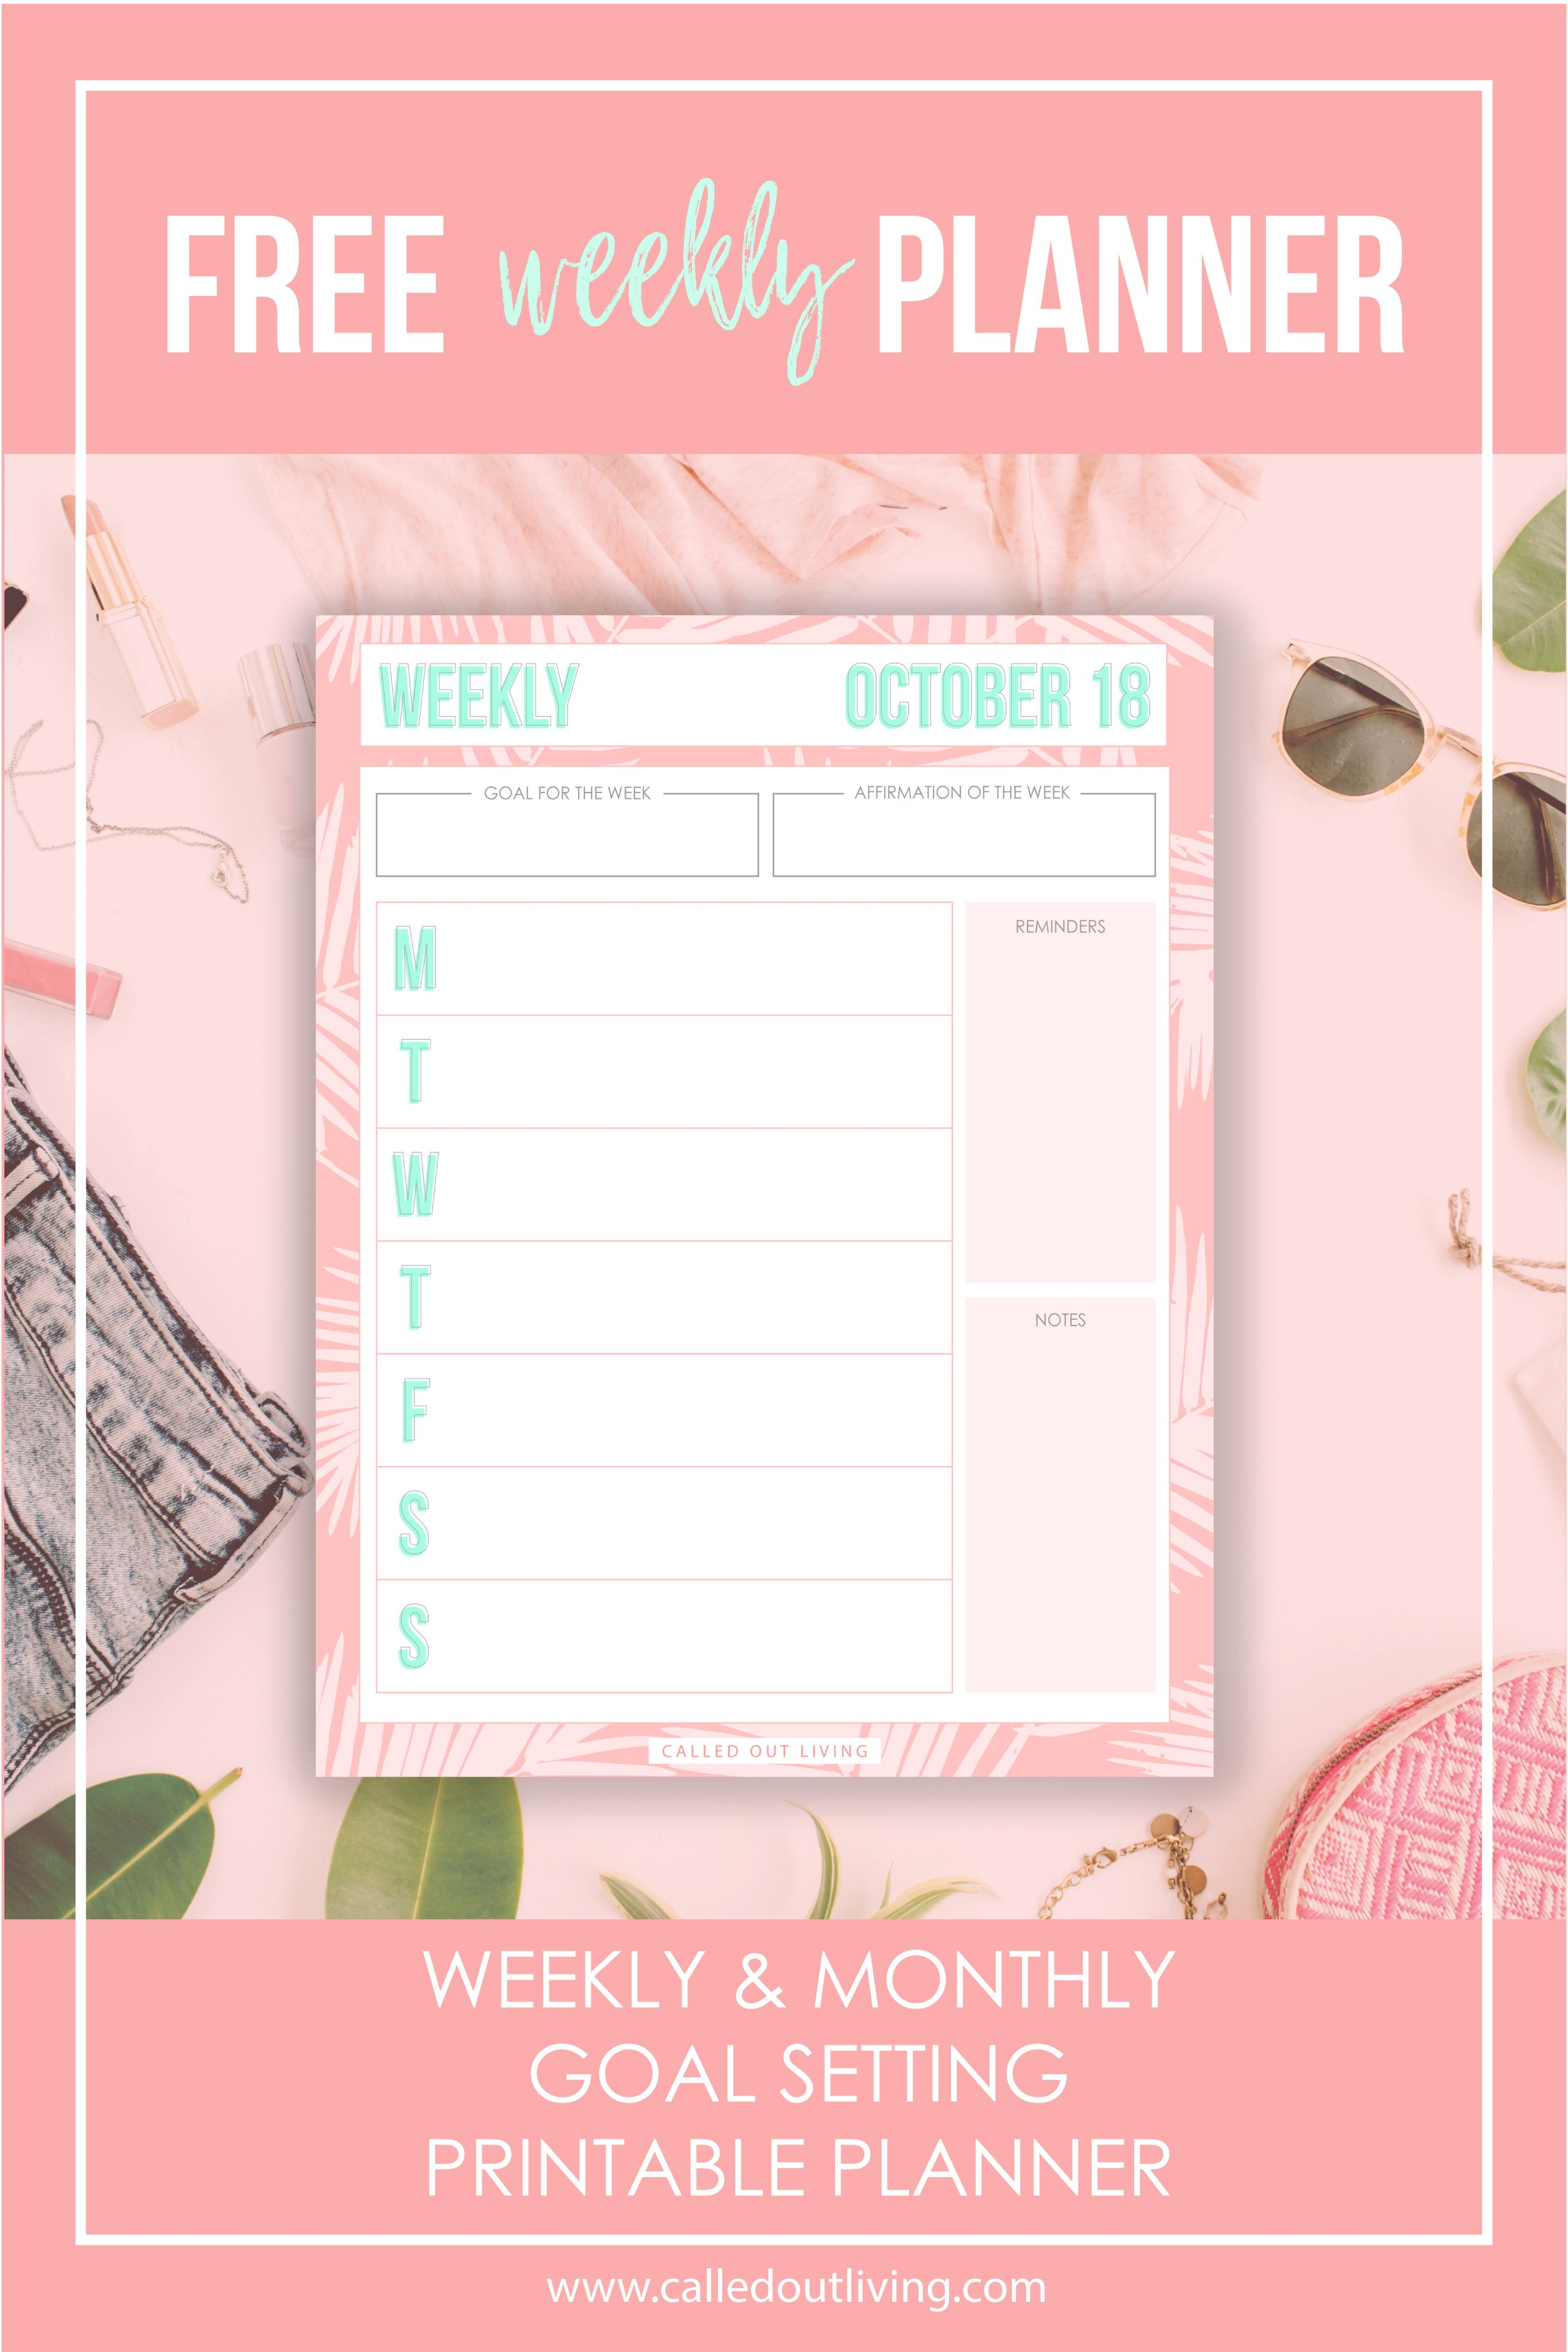 3 Tips To Plan Your Month With Images